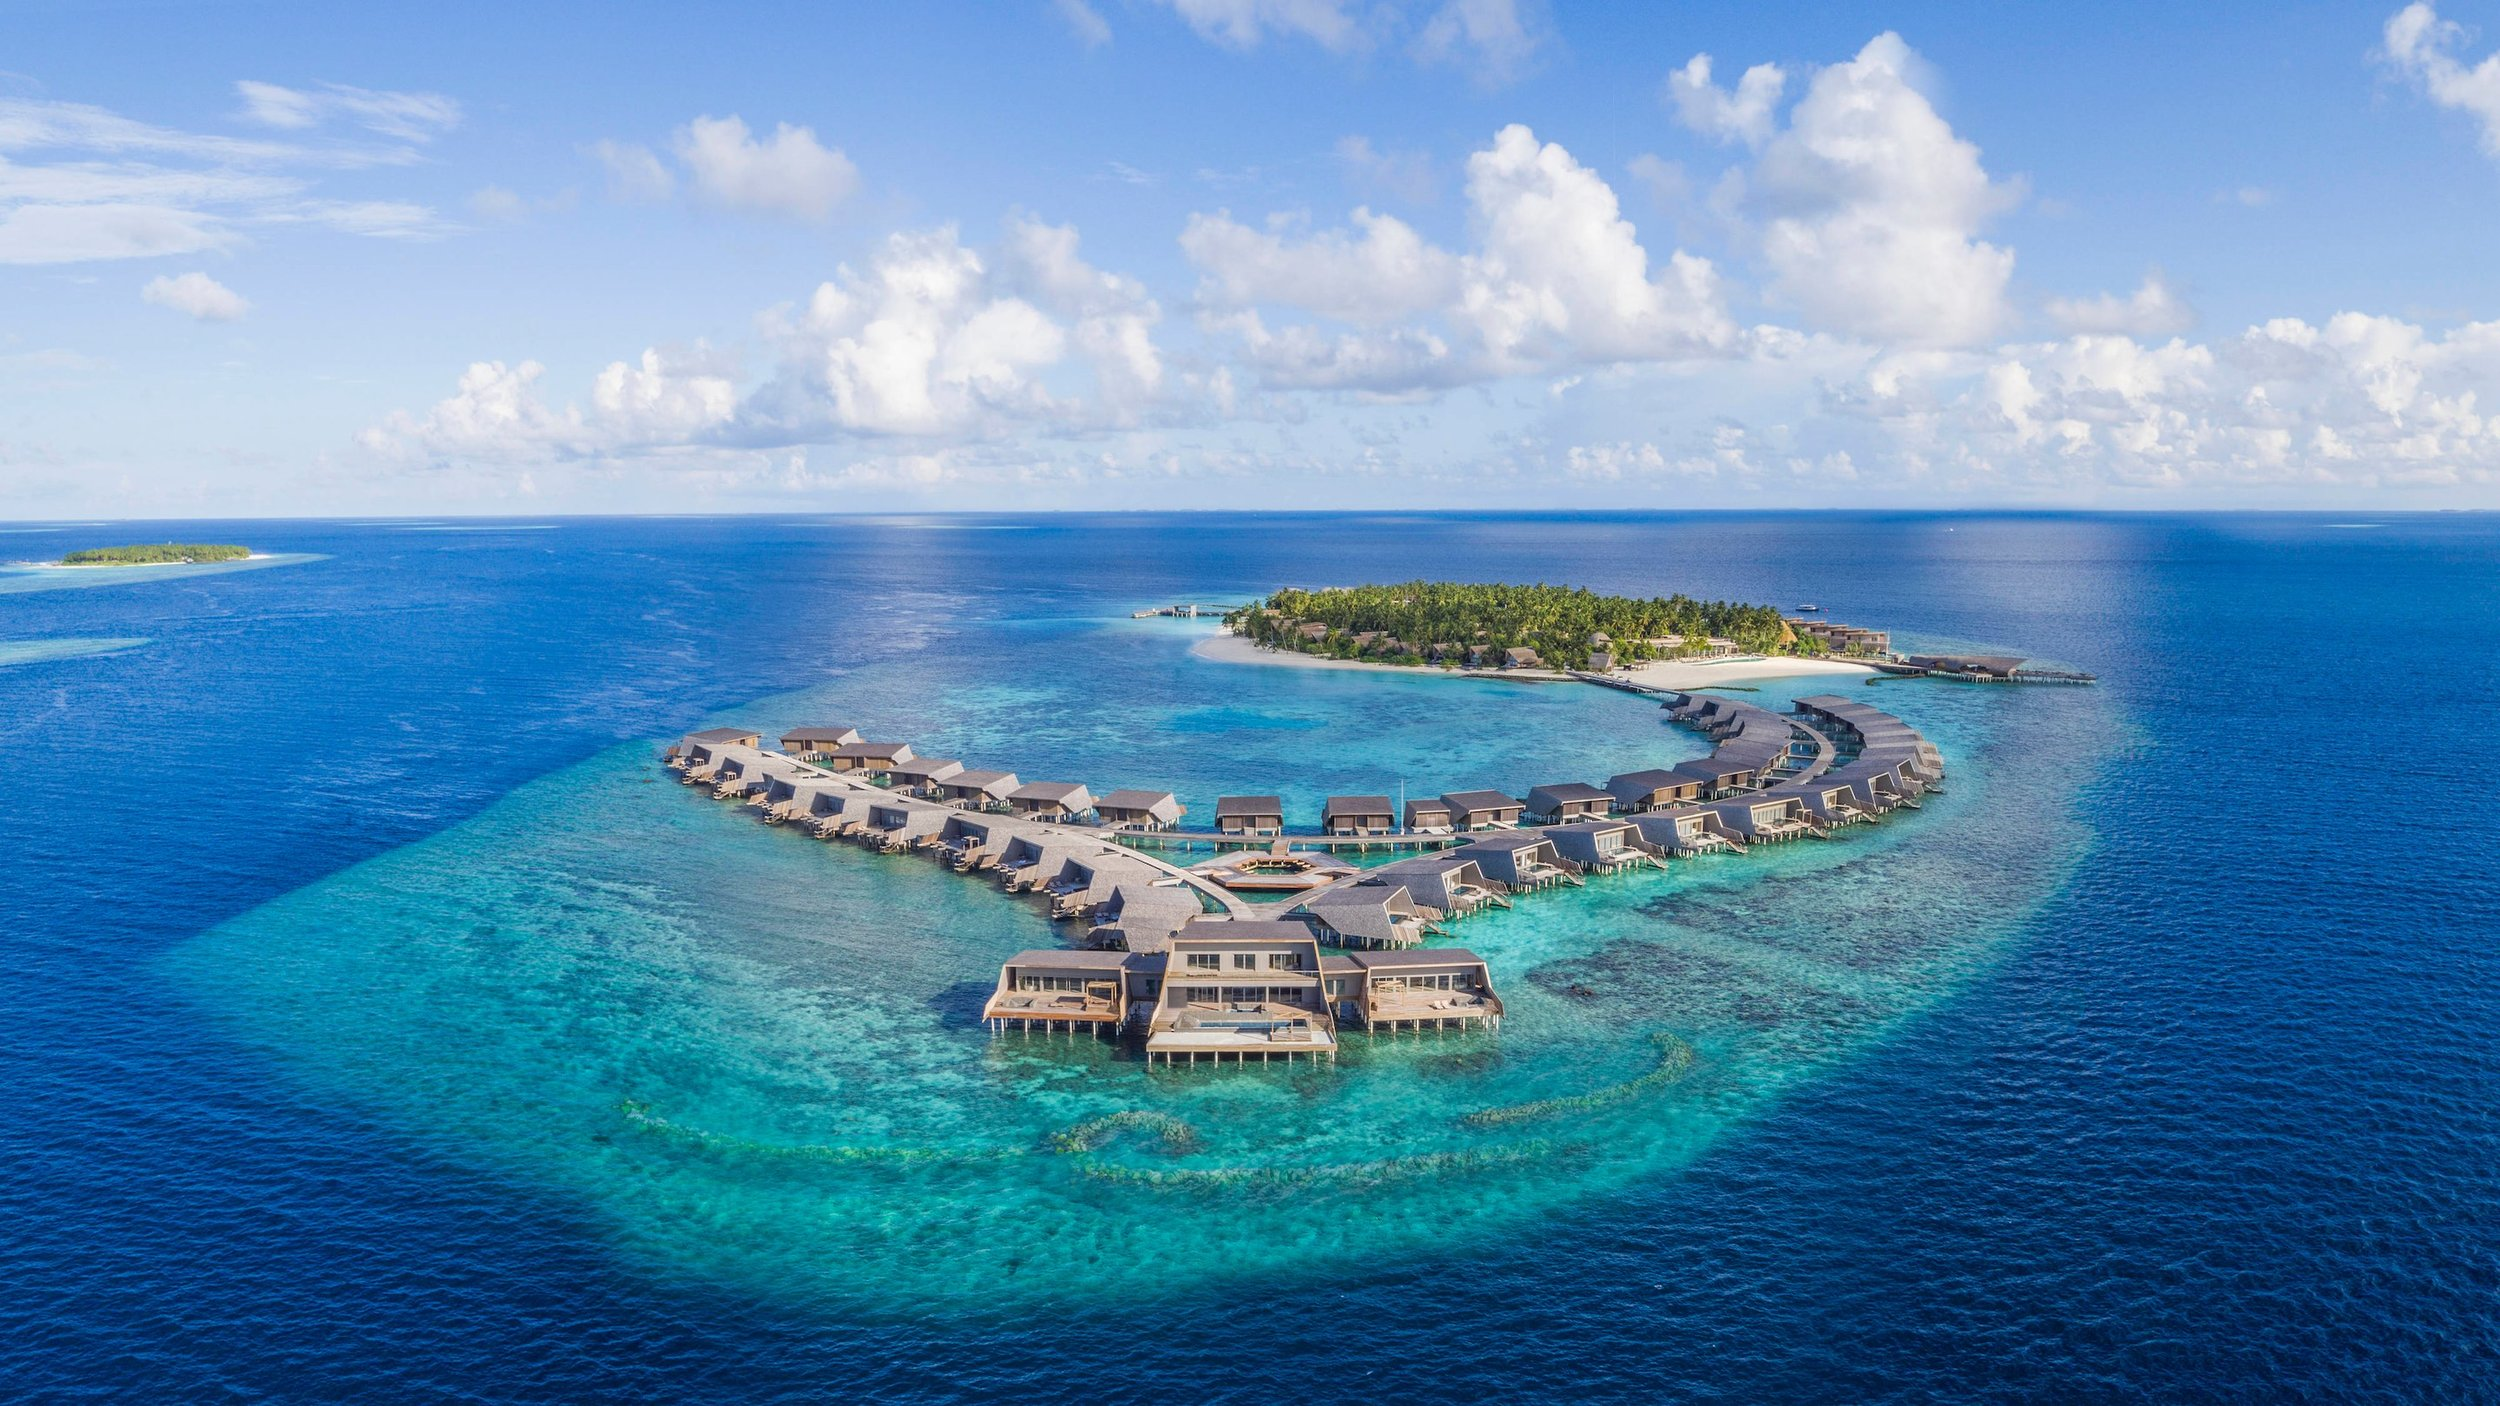 St. Regis Maldives Vomulli Resort